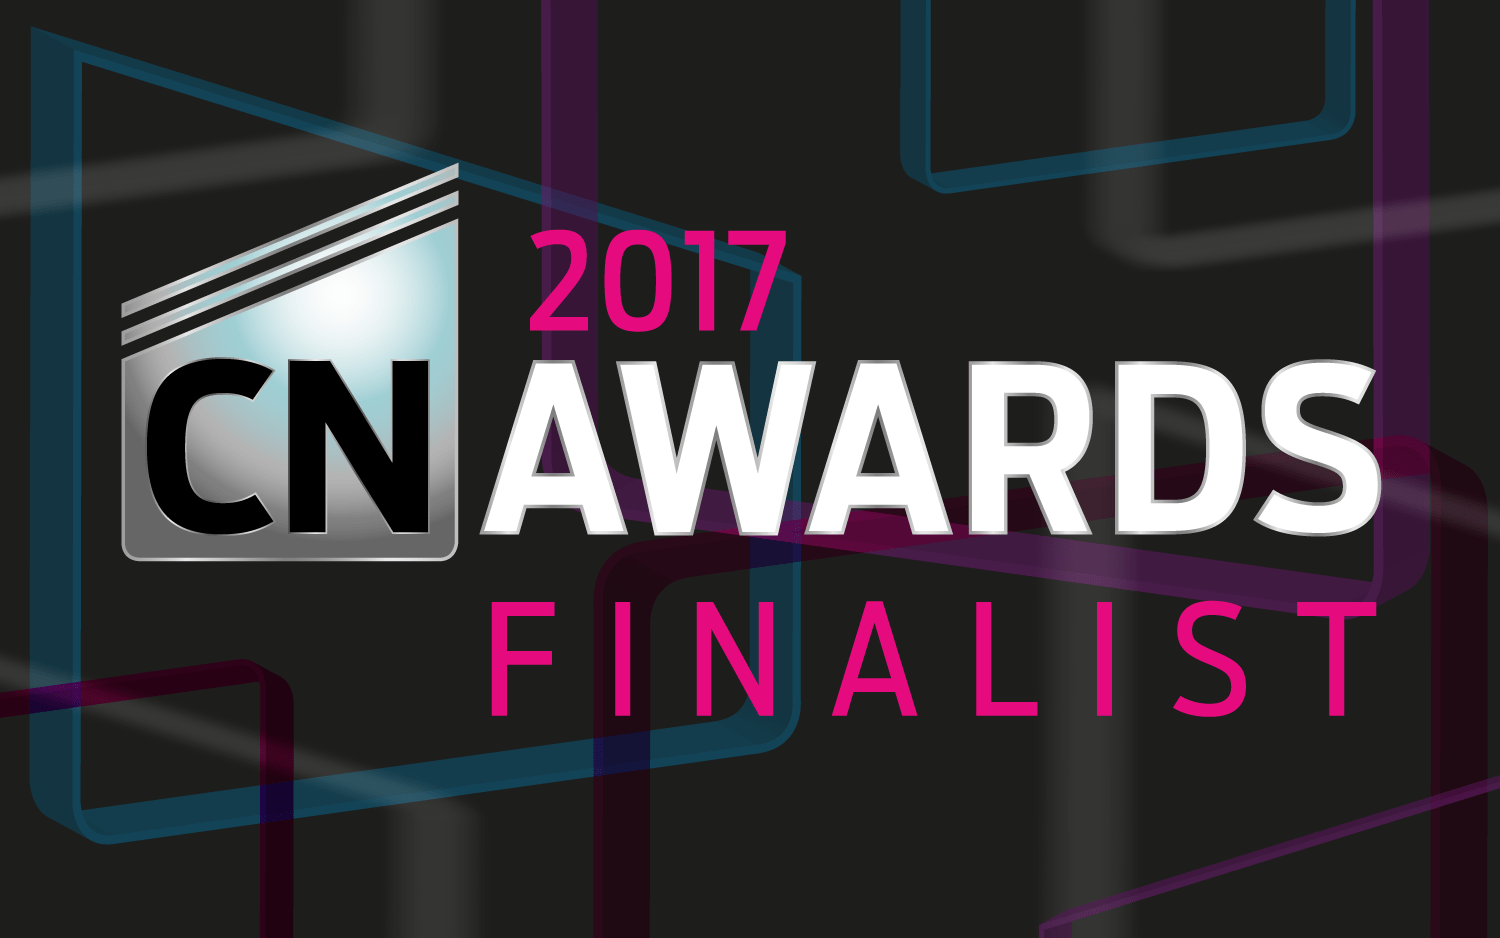 Doka UK have been selected as a finalist in the Commercial Innovation of the Year category of the 2017 Construction News Awards for Concremote